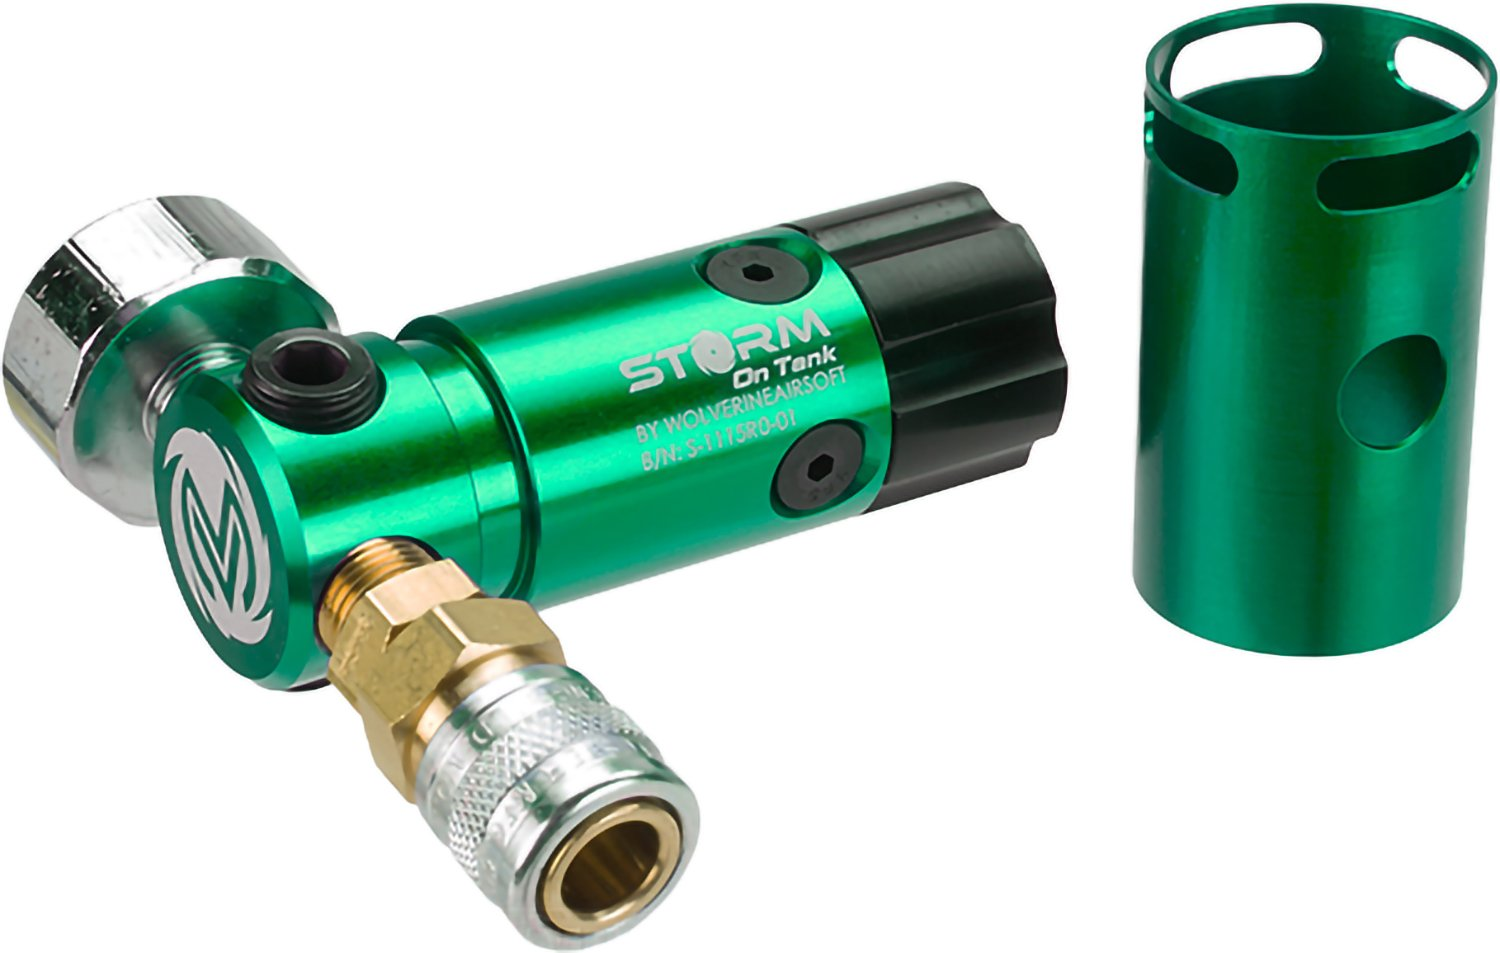 Evike Wolverine Airsoft Storm HPA On-Tank Regulator (Color: Regulator Only/Green) by Evike